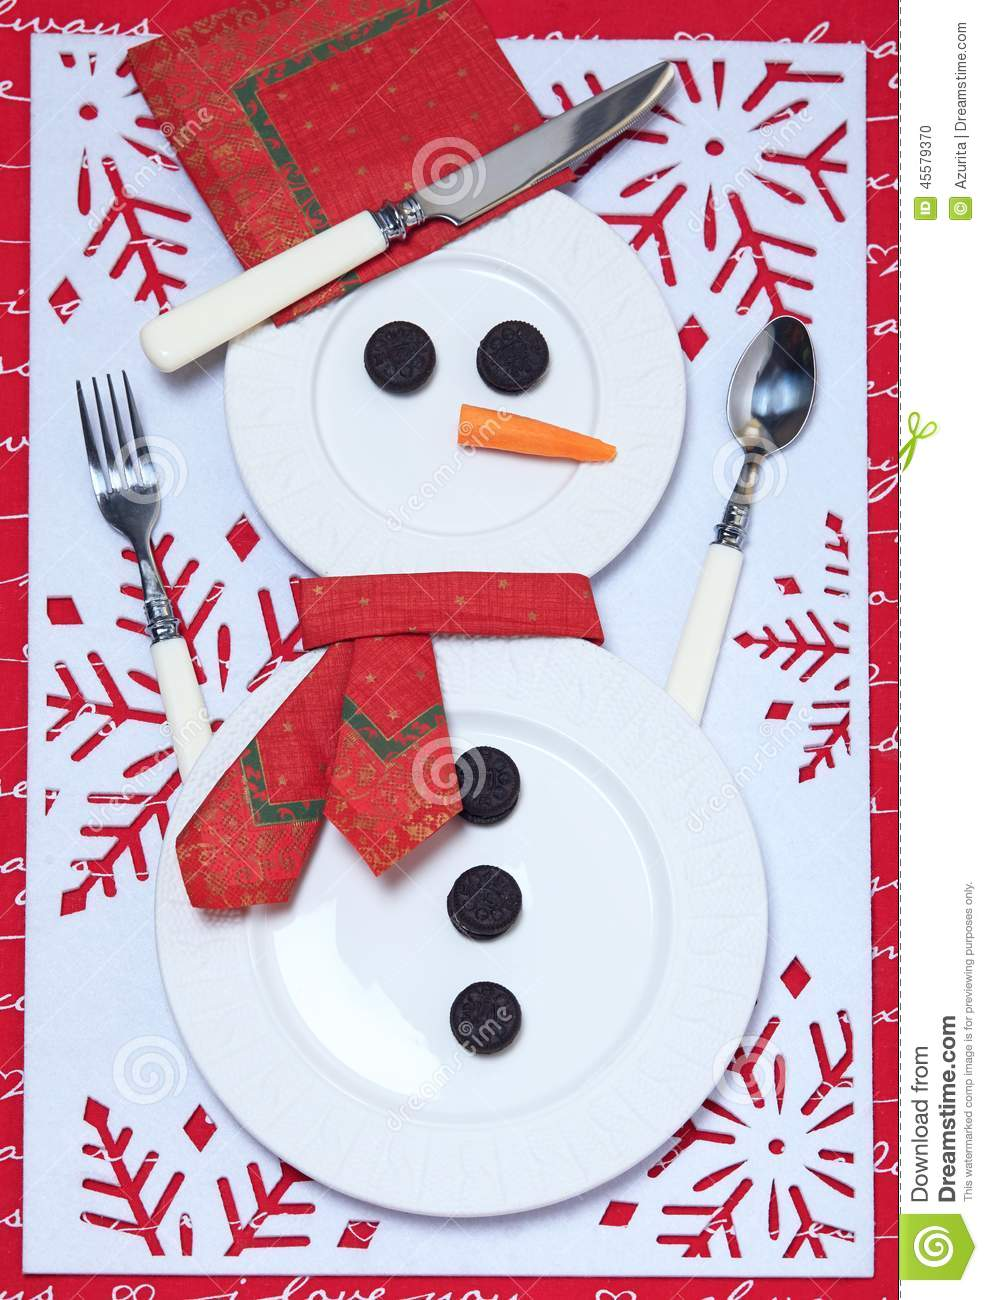 Festive Table Setting For Christmas Stock Photo Image